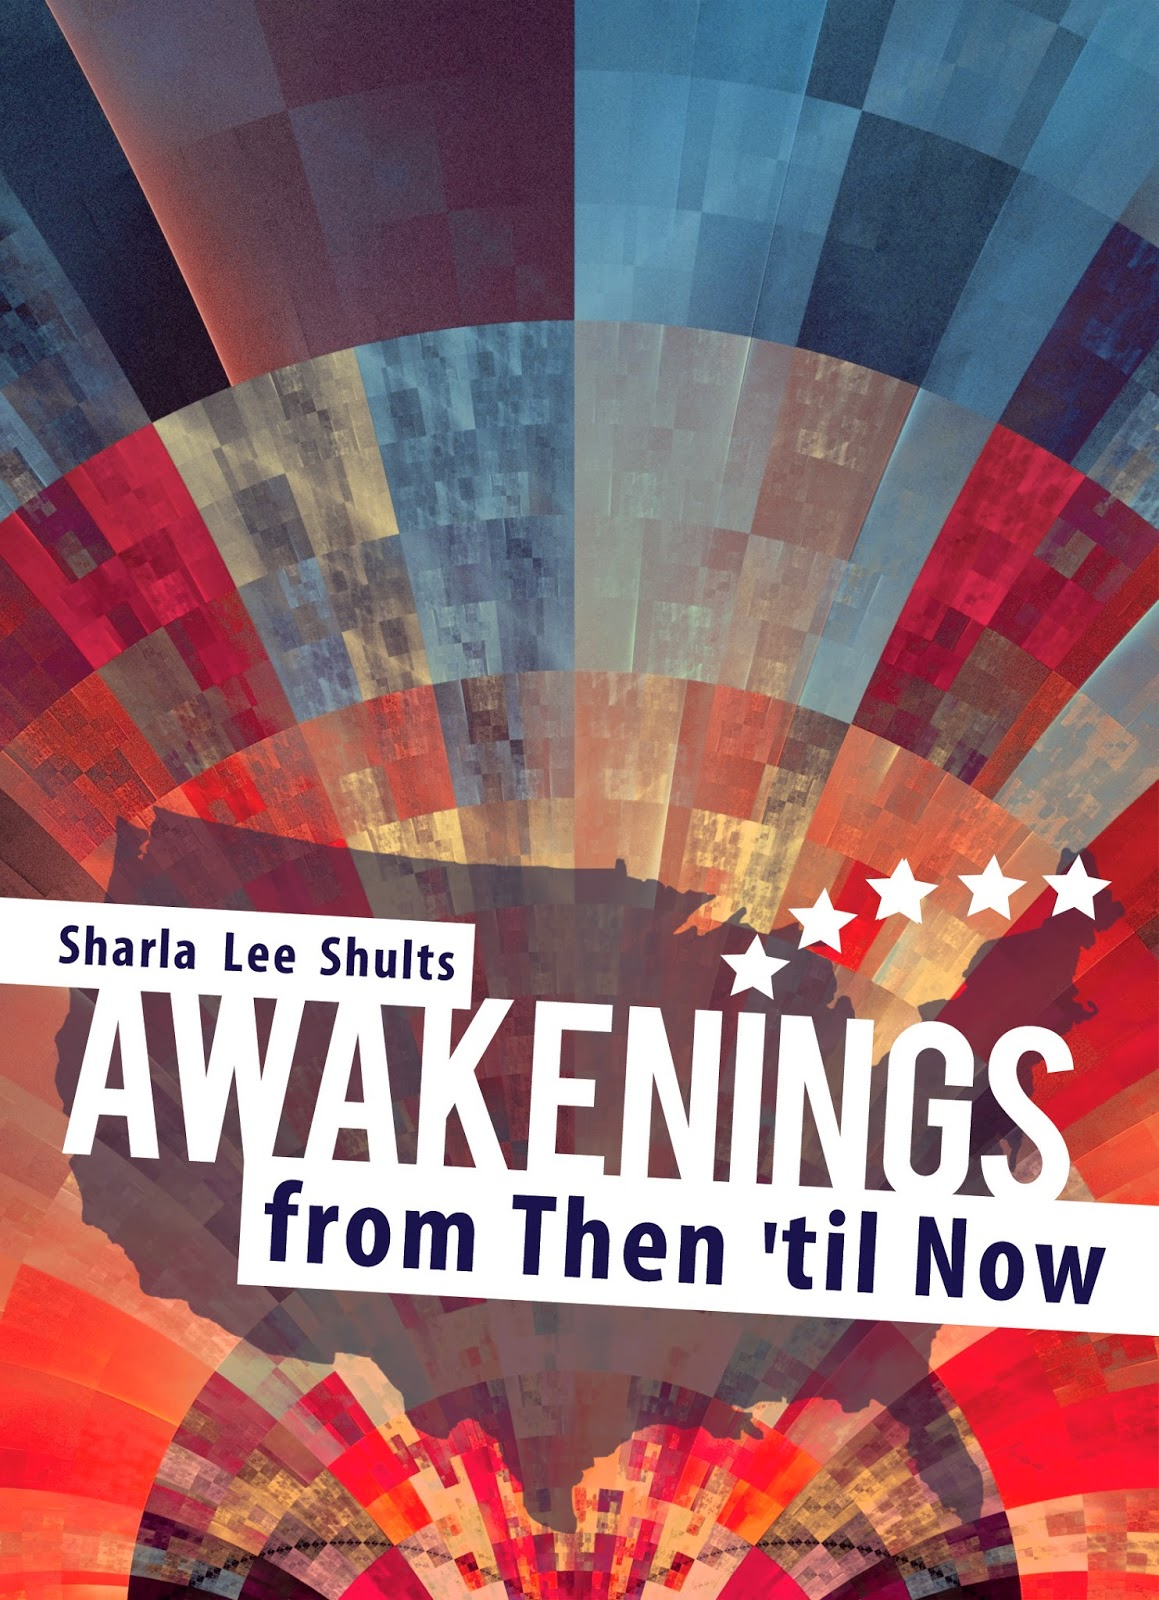 http://www.amazon.com/Awakenings-Then-til-Sharla-Shults/dp/1620247313/ref=la_B007YUYUG4_1_1?s=books&ie=UTF8&qid=1404240944&sr=1-1